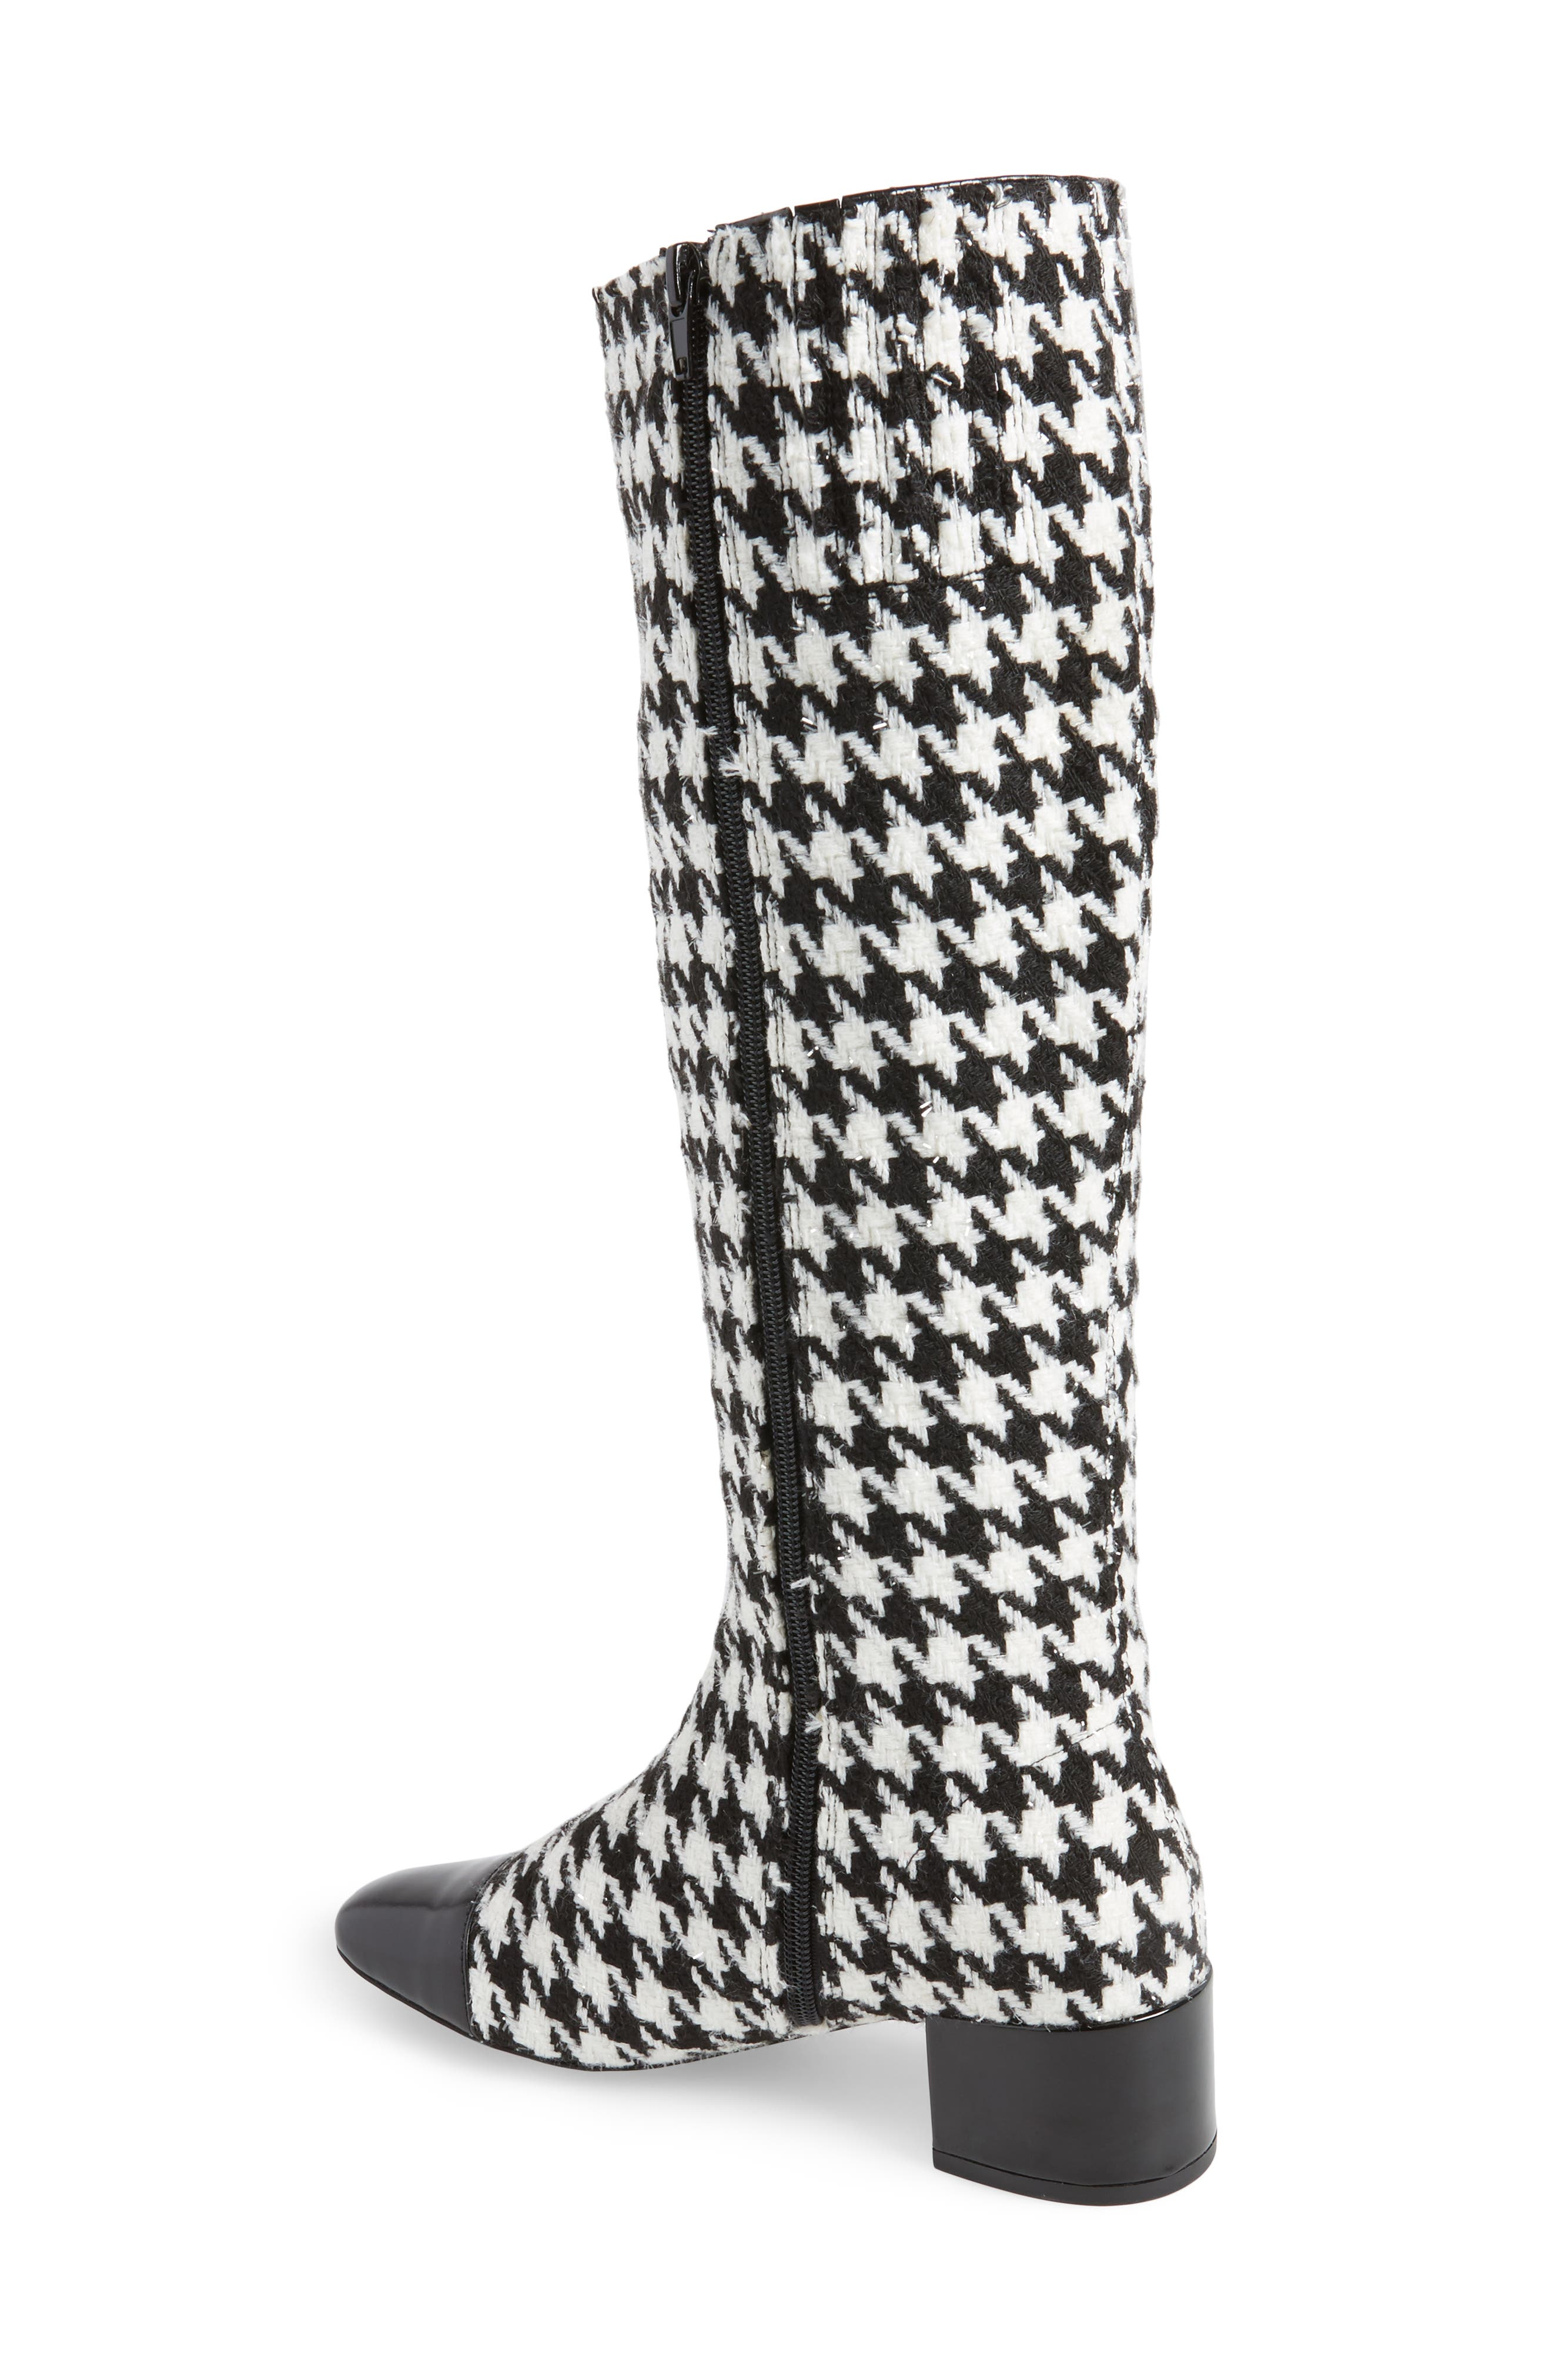 Covey Knee-High Boot,                             Alternate thumbnail 2, color,                             Black White Houndstooth